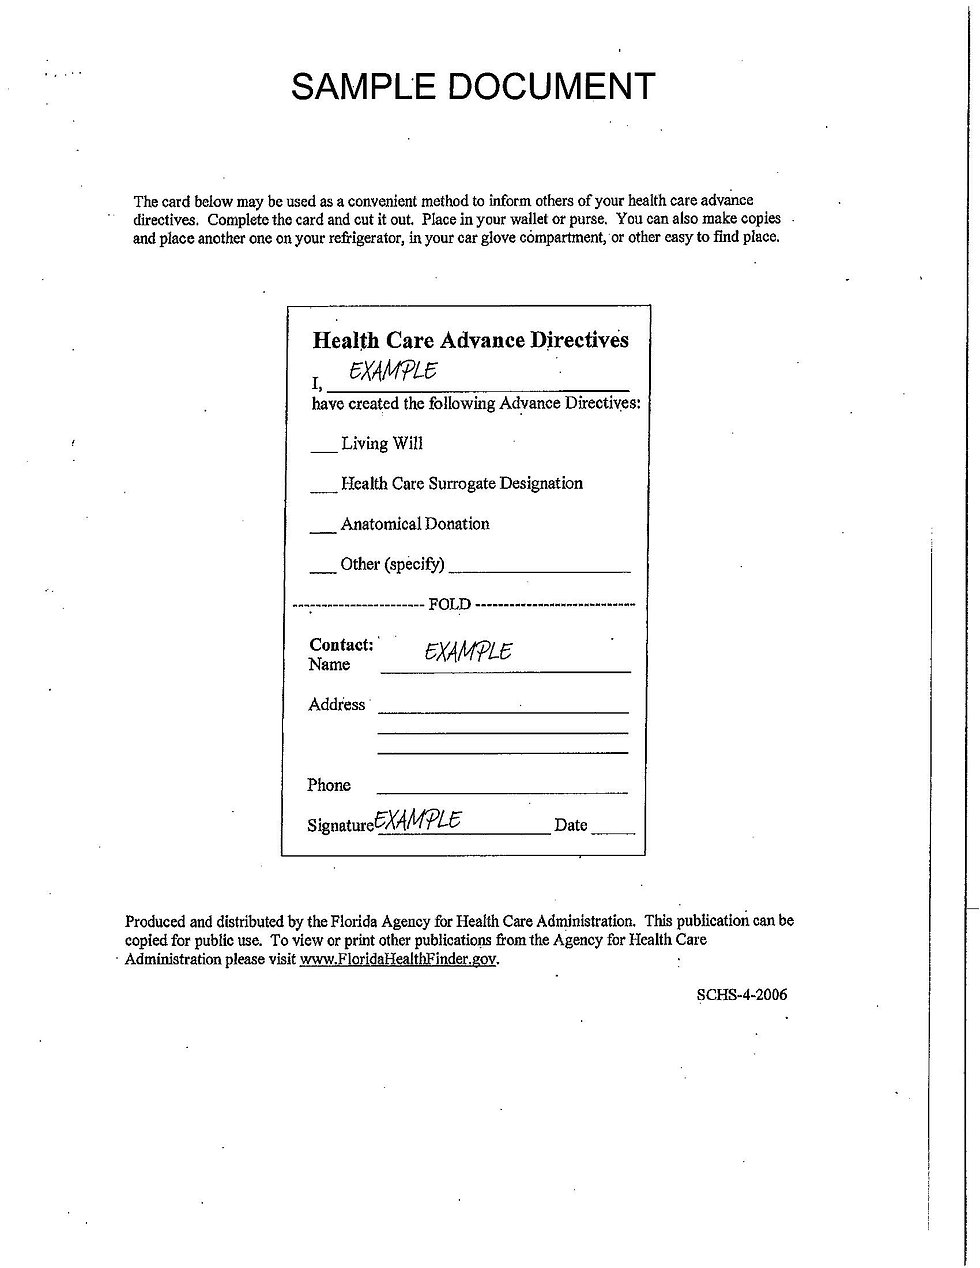 health care advance directives_Page_9.jp